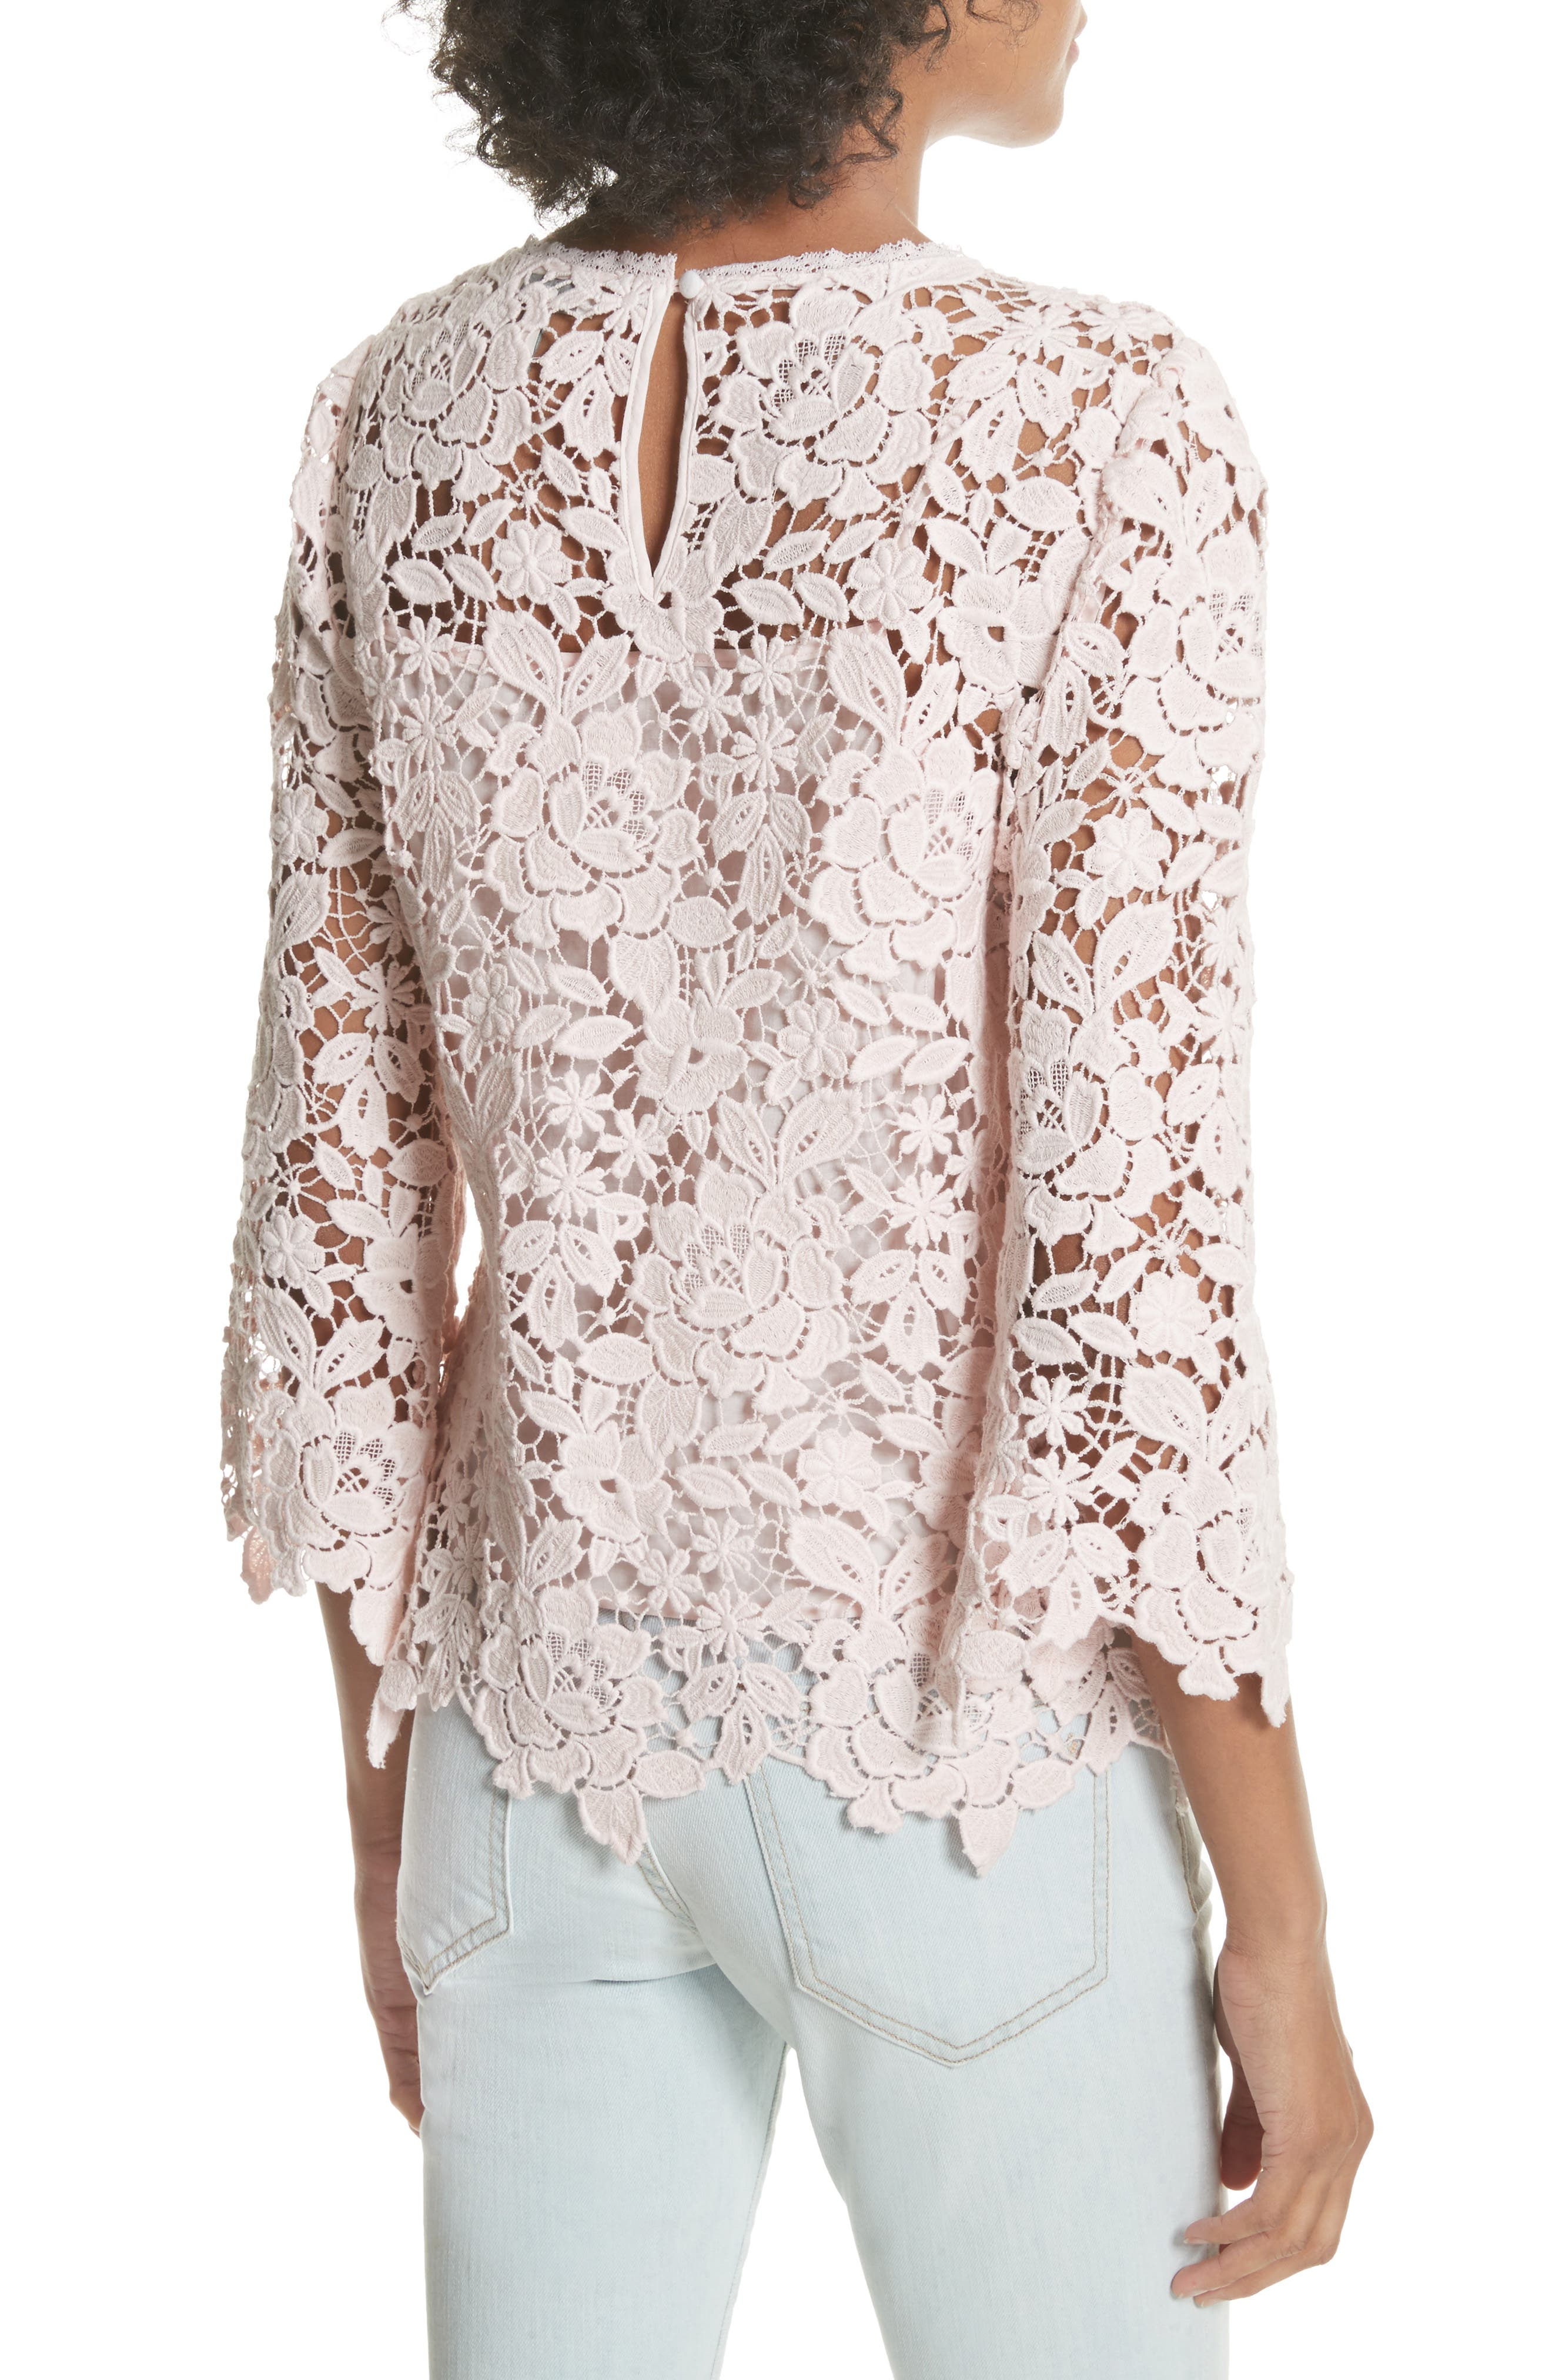 Charnette Lace Top,                             Alternate thumbnail 2, color,                             Rosewater